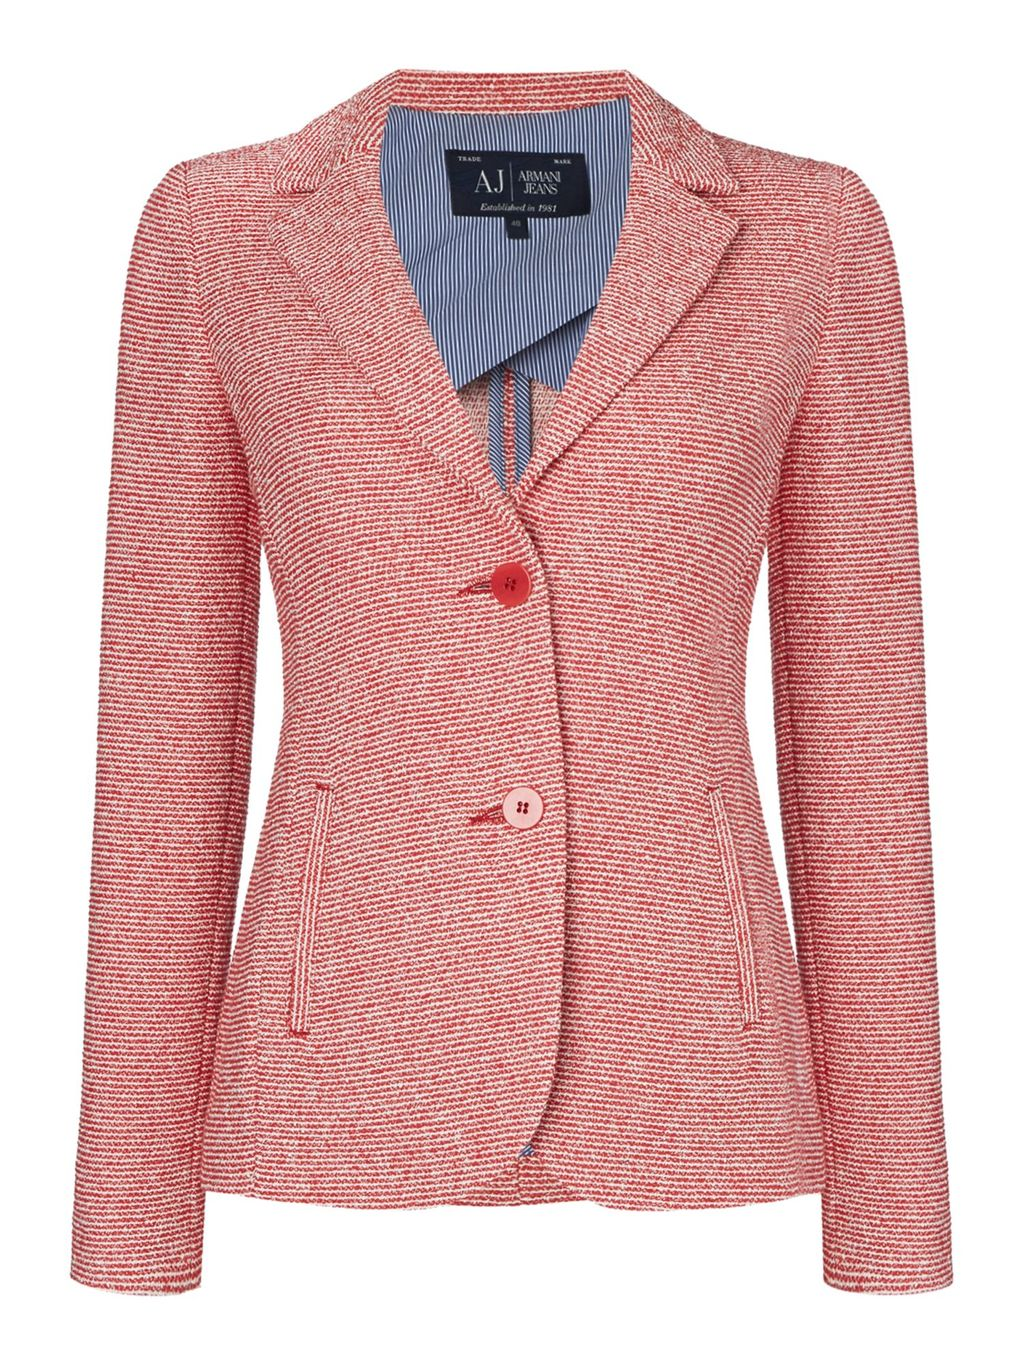 Single Breasted Tweed Blazer, Red - style: single breasted blazer; collar: standard lapel/rever collar; pattern: herringbone/tweed; predominant colour: pink; occasions: evening, work; length: standard; fit: tailored/fitted; fibres: cotton - mix; sleeve length: long sleeve; sleeve style: standard; collar break: medium; pattern type: fabric; pattern size: light/subtle; texture group: tweed - light/midweight; season: s/s 2016